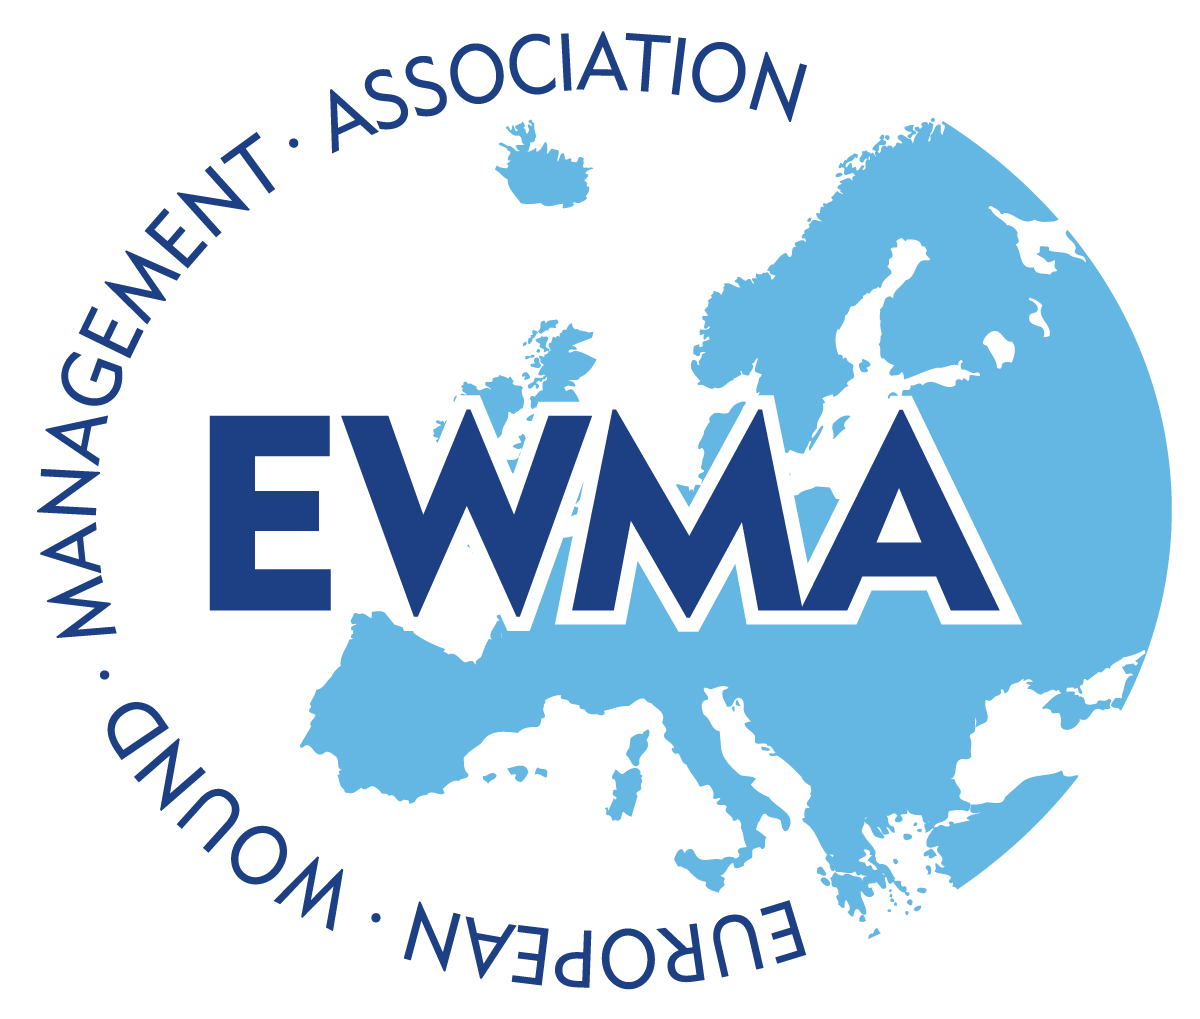 European wound management association, ewma, EB2020, EB Congress, EB World Congress, Blisters, Genetic, Skin cancer, Infection